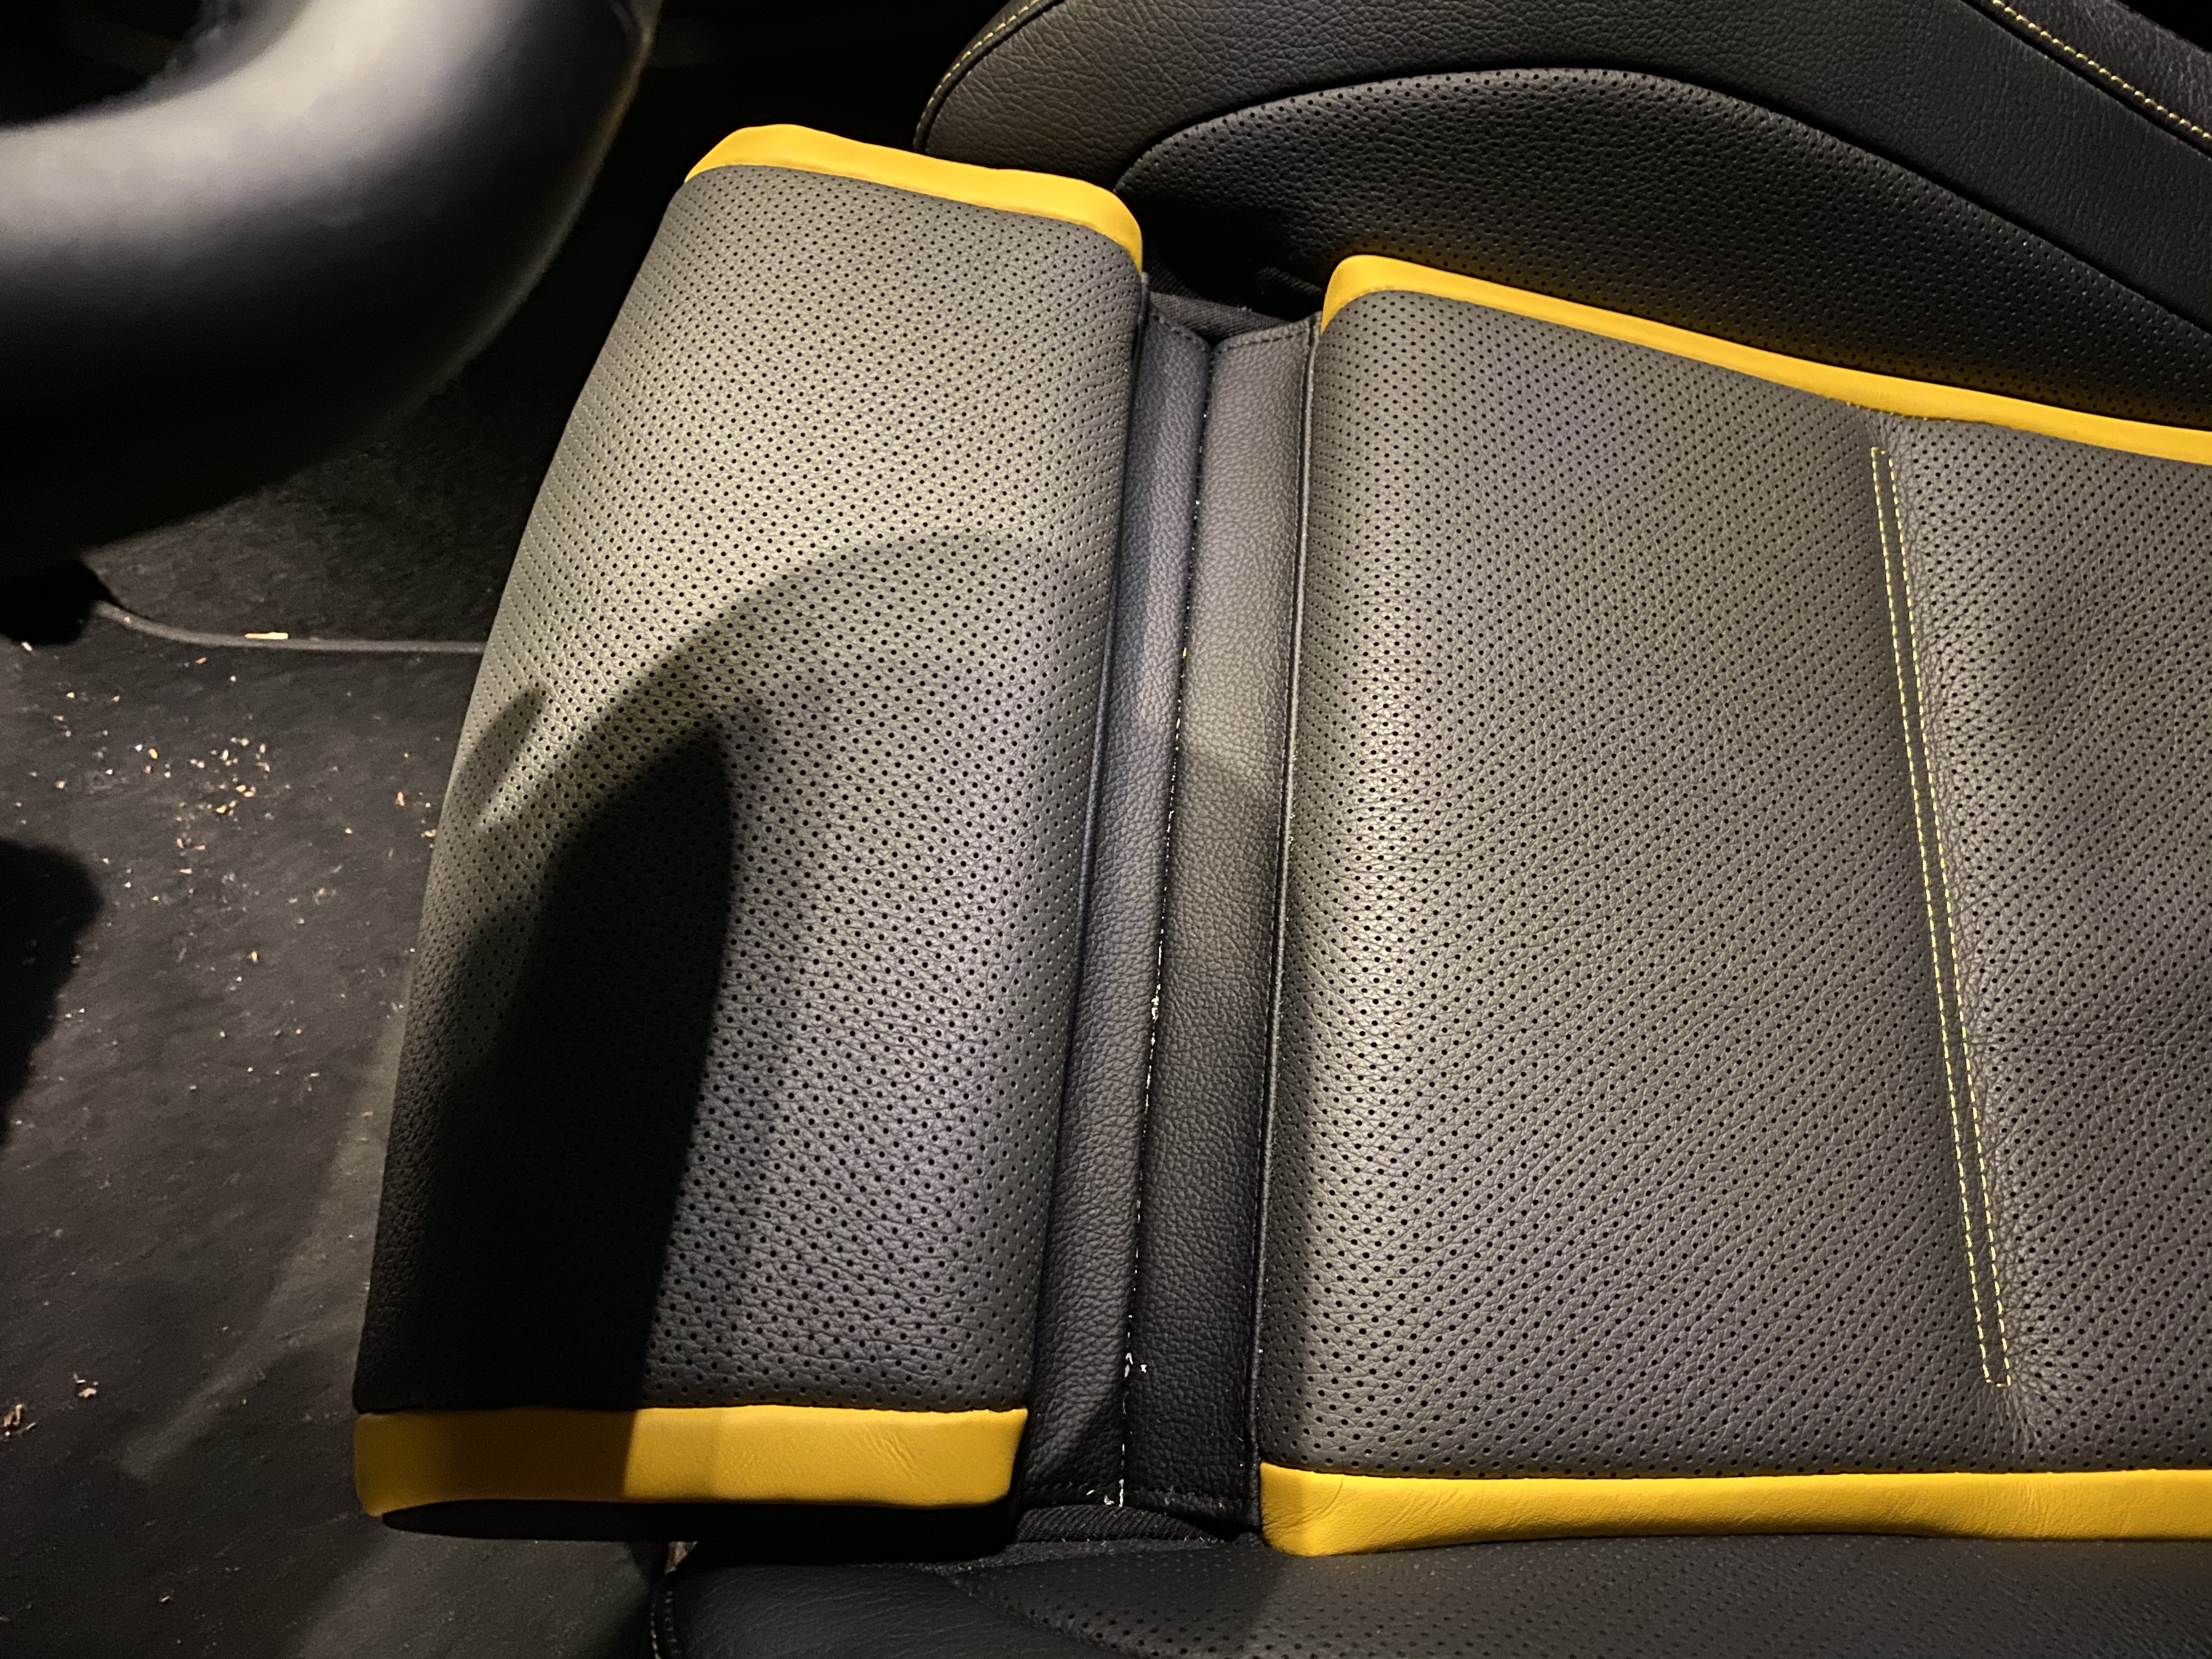 a45s_seat_extension01.jpg